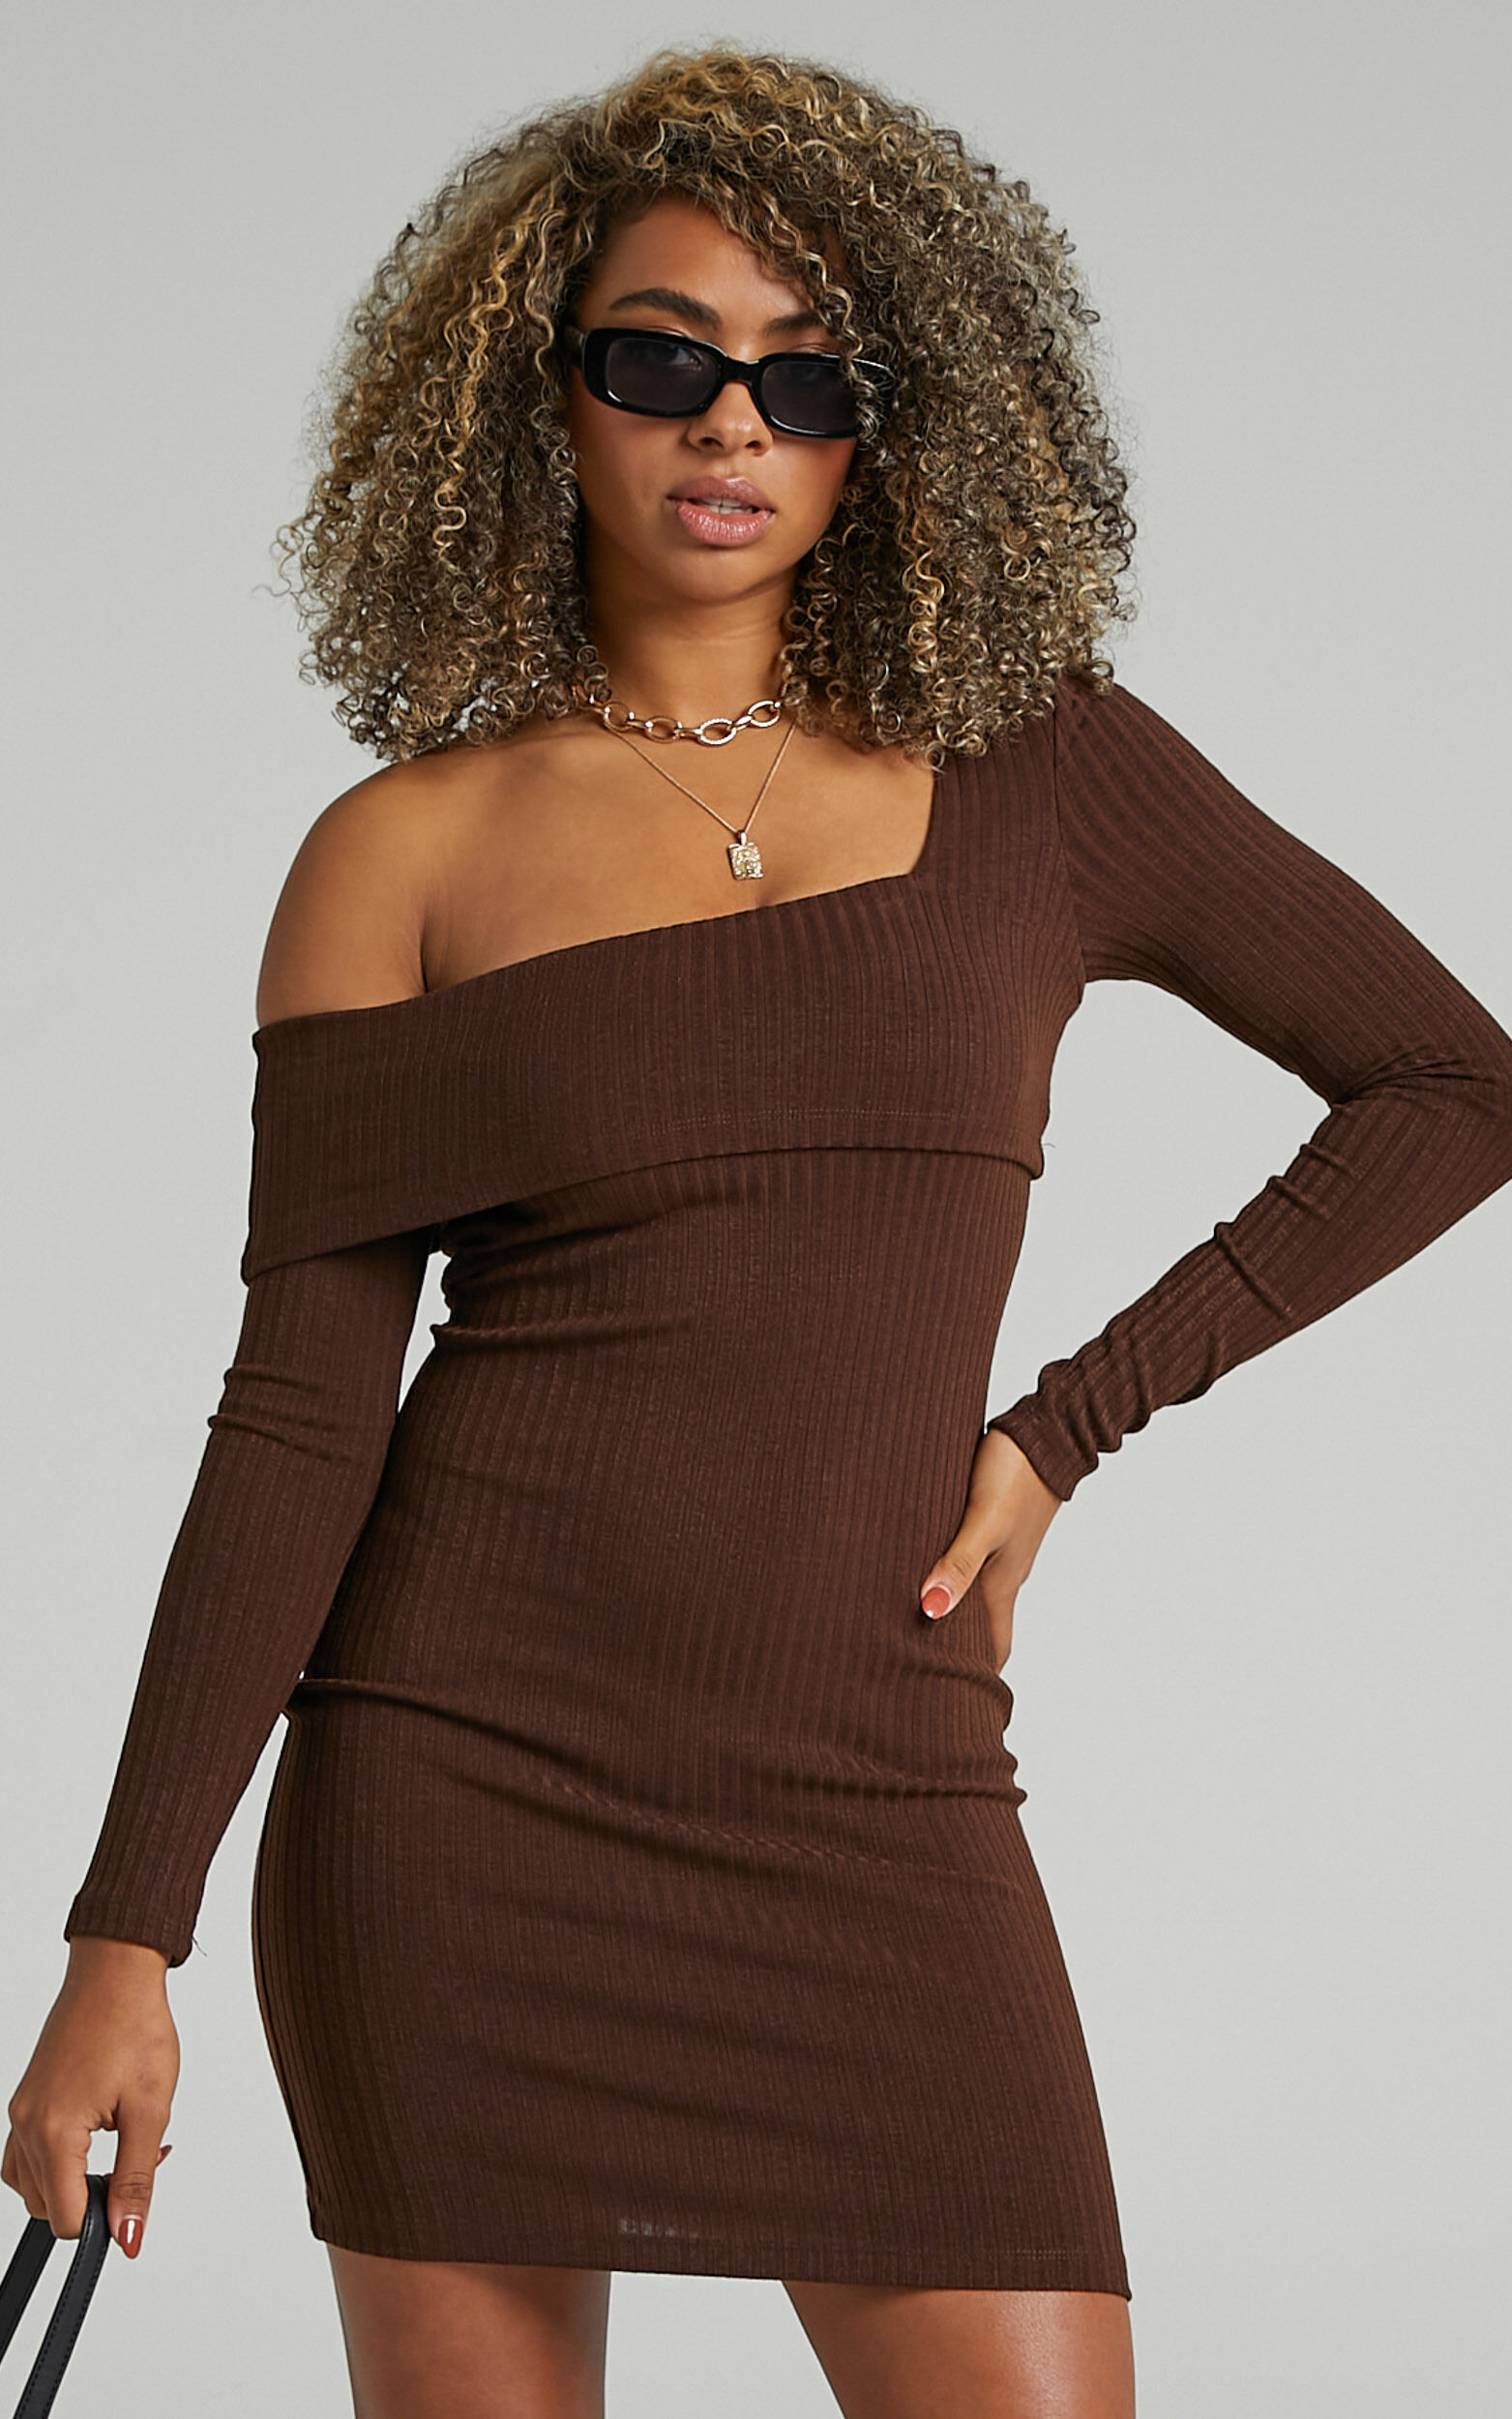 Hyden Assymmetrical Neckline with Long Sleeve Mini Dress in Chocolate - 06, BRN1, super-hi-res image number null